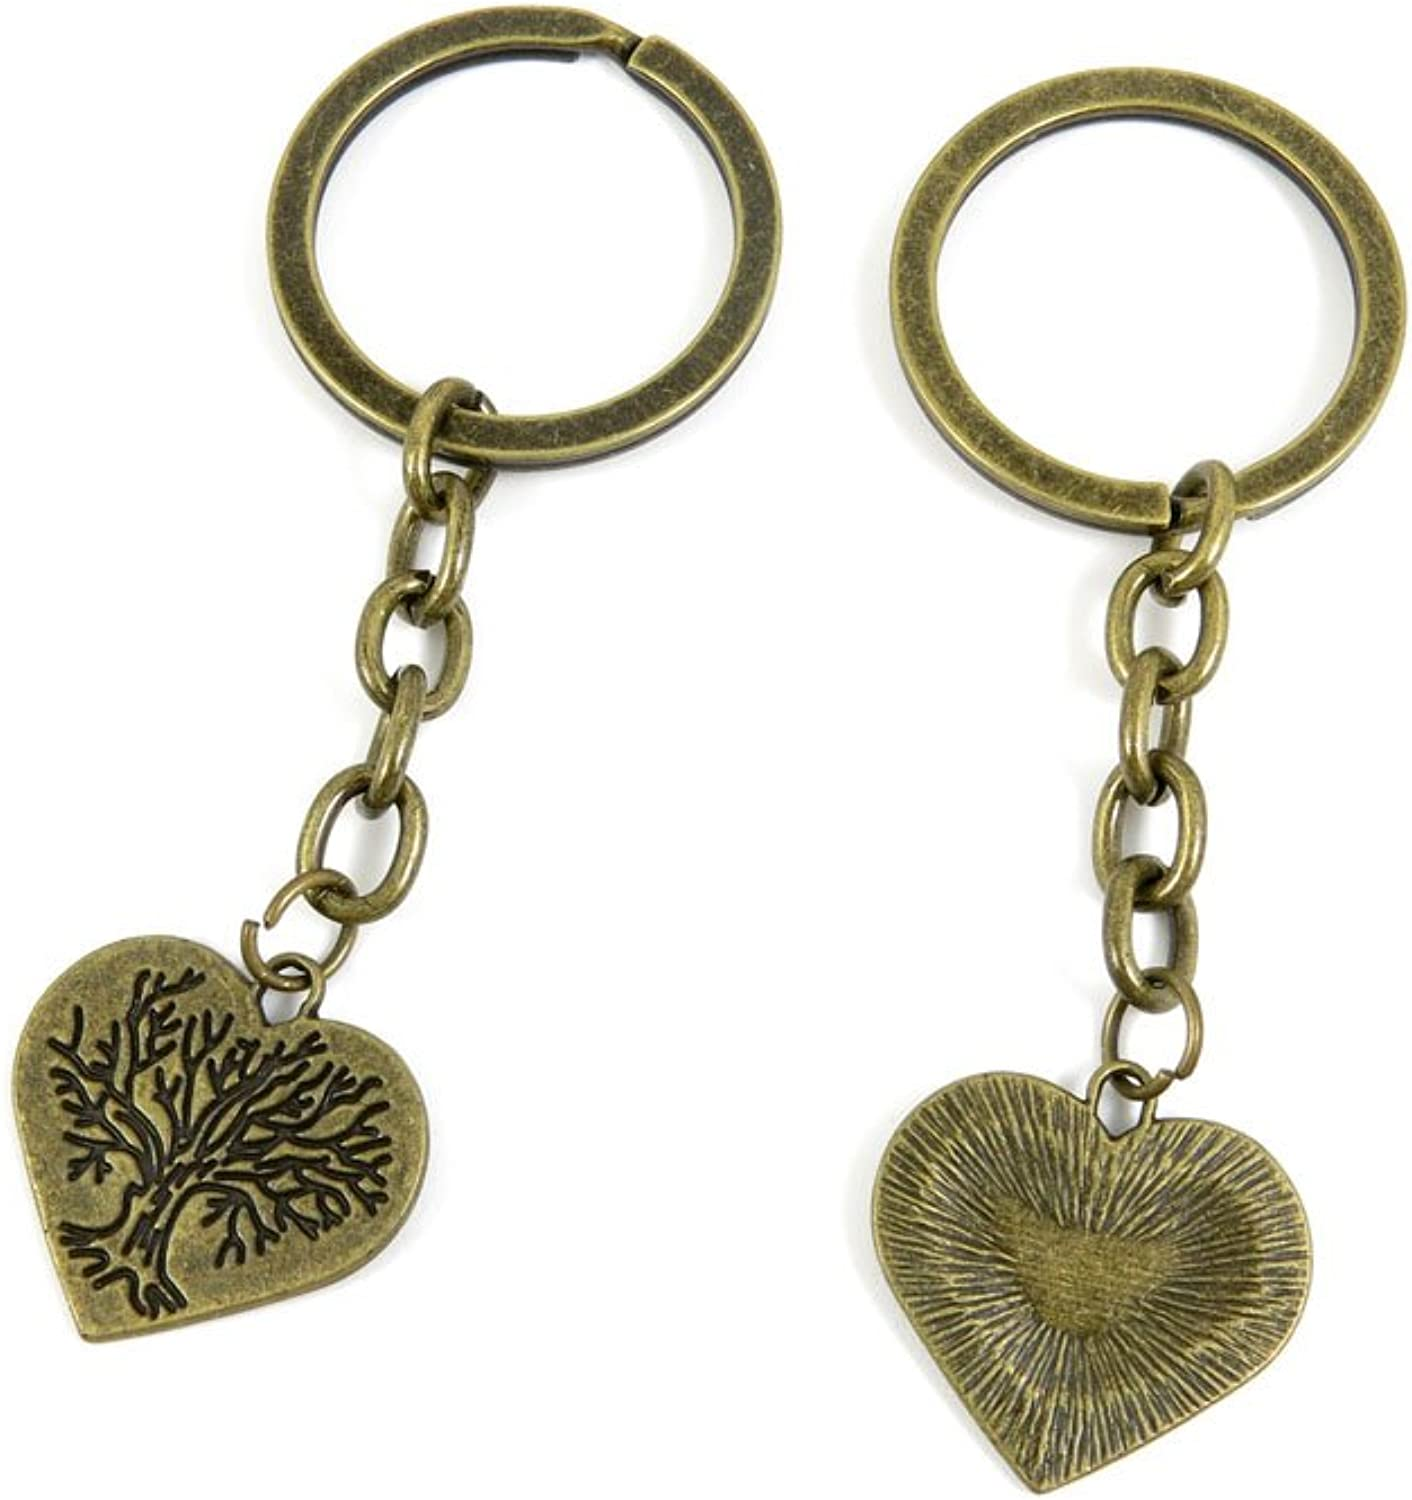 100 PCS Keyrings Keychains Key Ring Chains Tags Jewelry Findings Clasps Buckles Supplies H2KR1 Three Heart